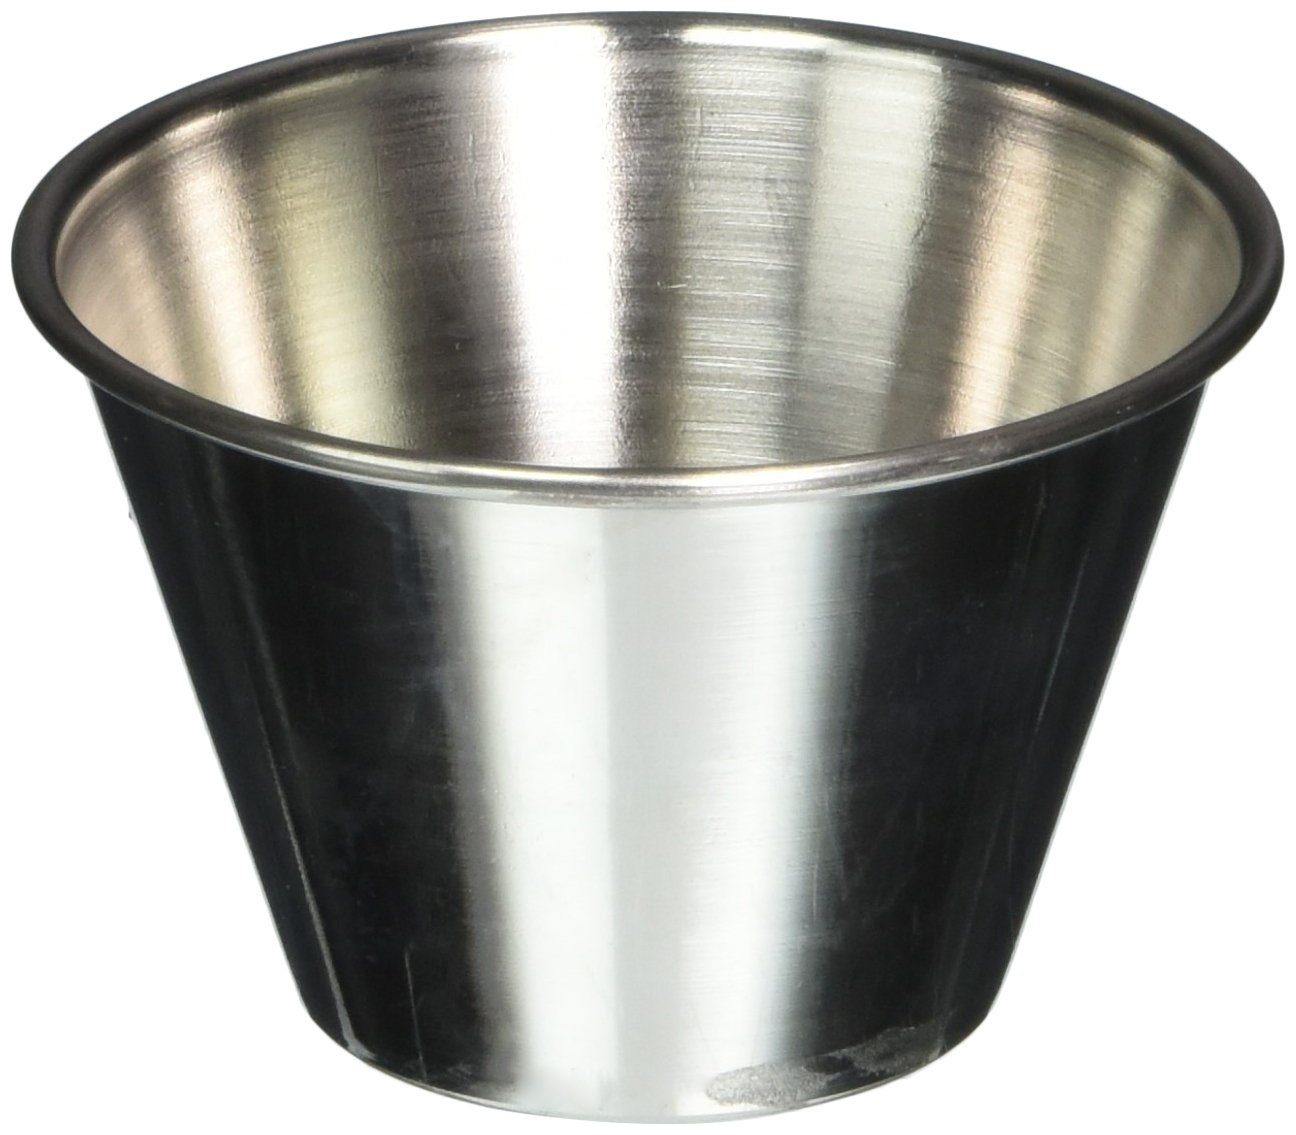 American Metalcraft Stainless Steel Sauce Cup, 4 Ounce - 1 each.